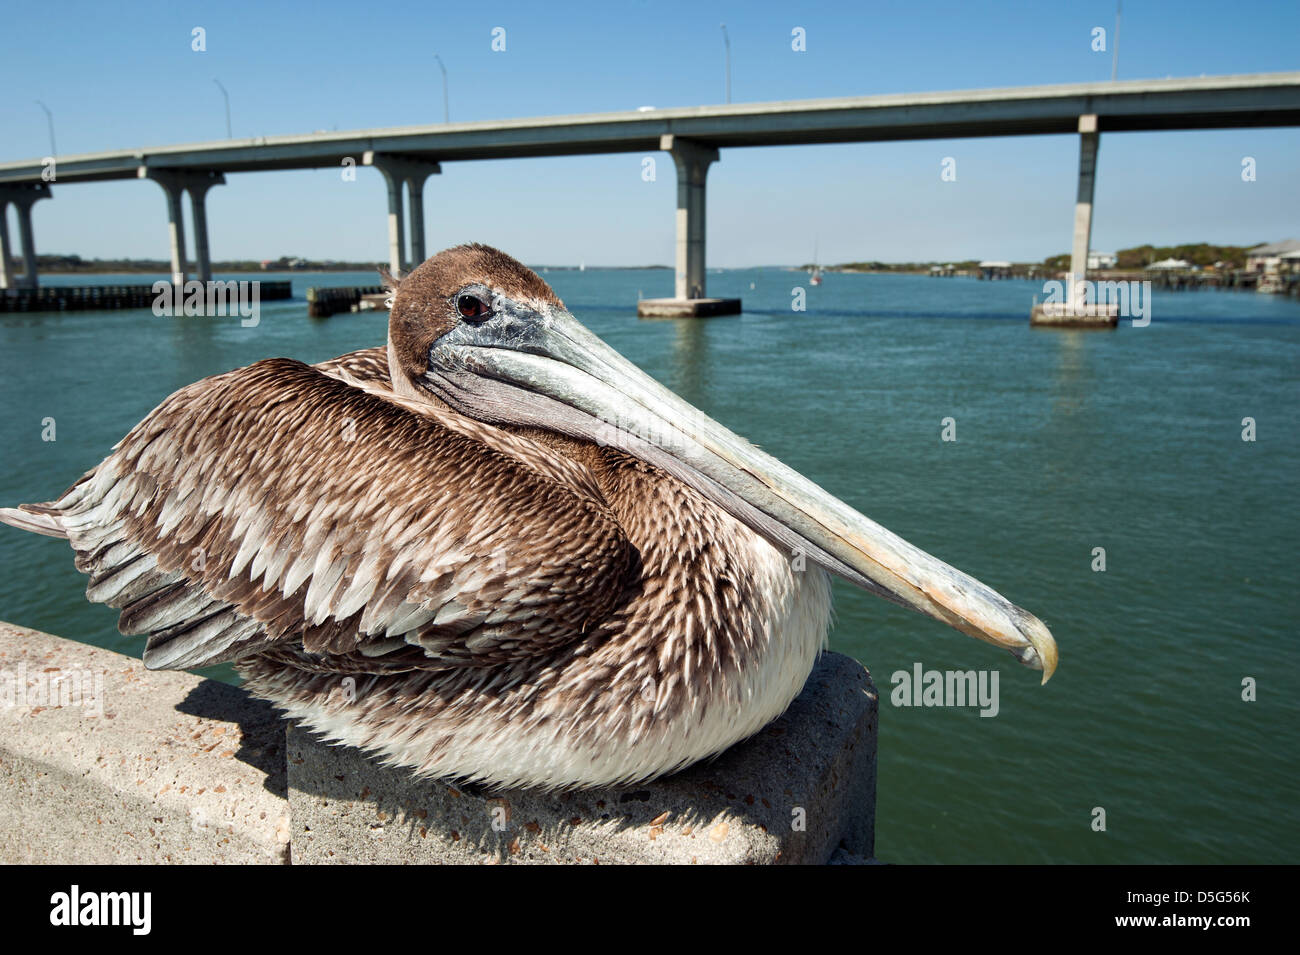 A brown pelican on a fishing pier in st augustine for St augustine fishing pier